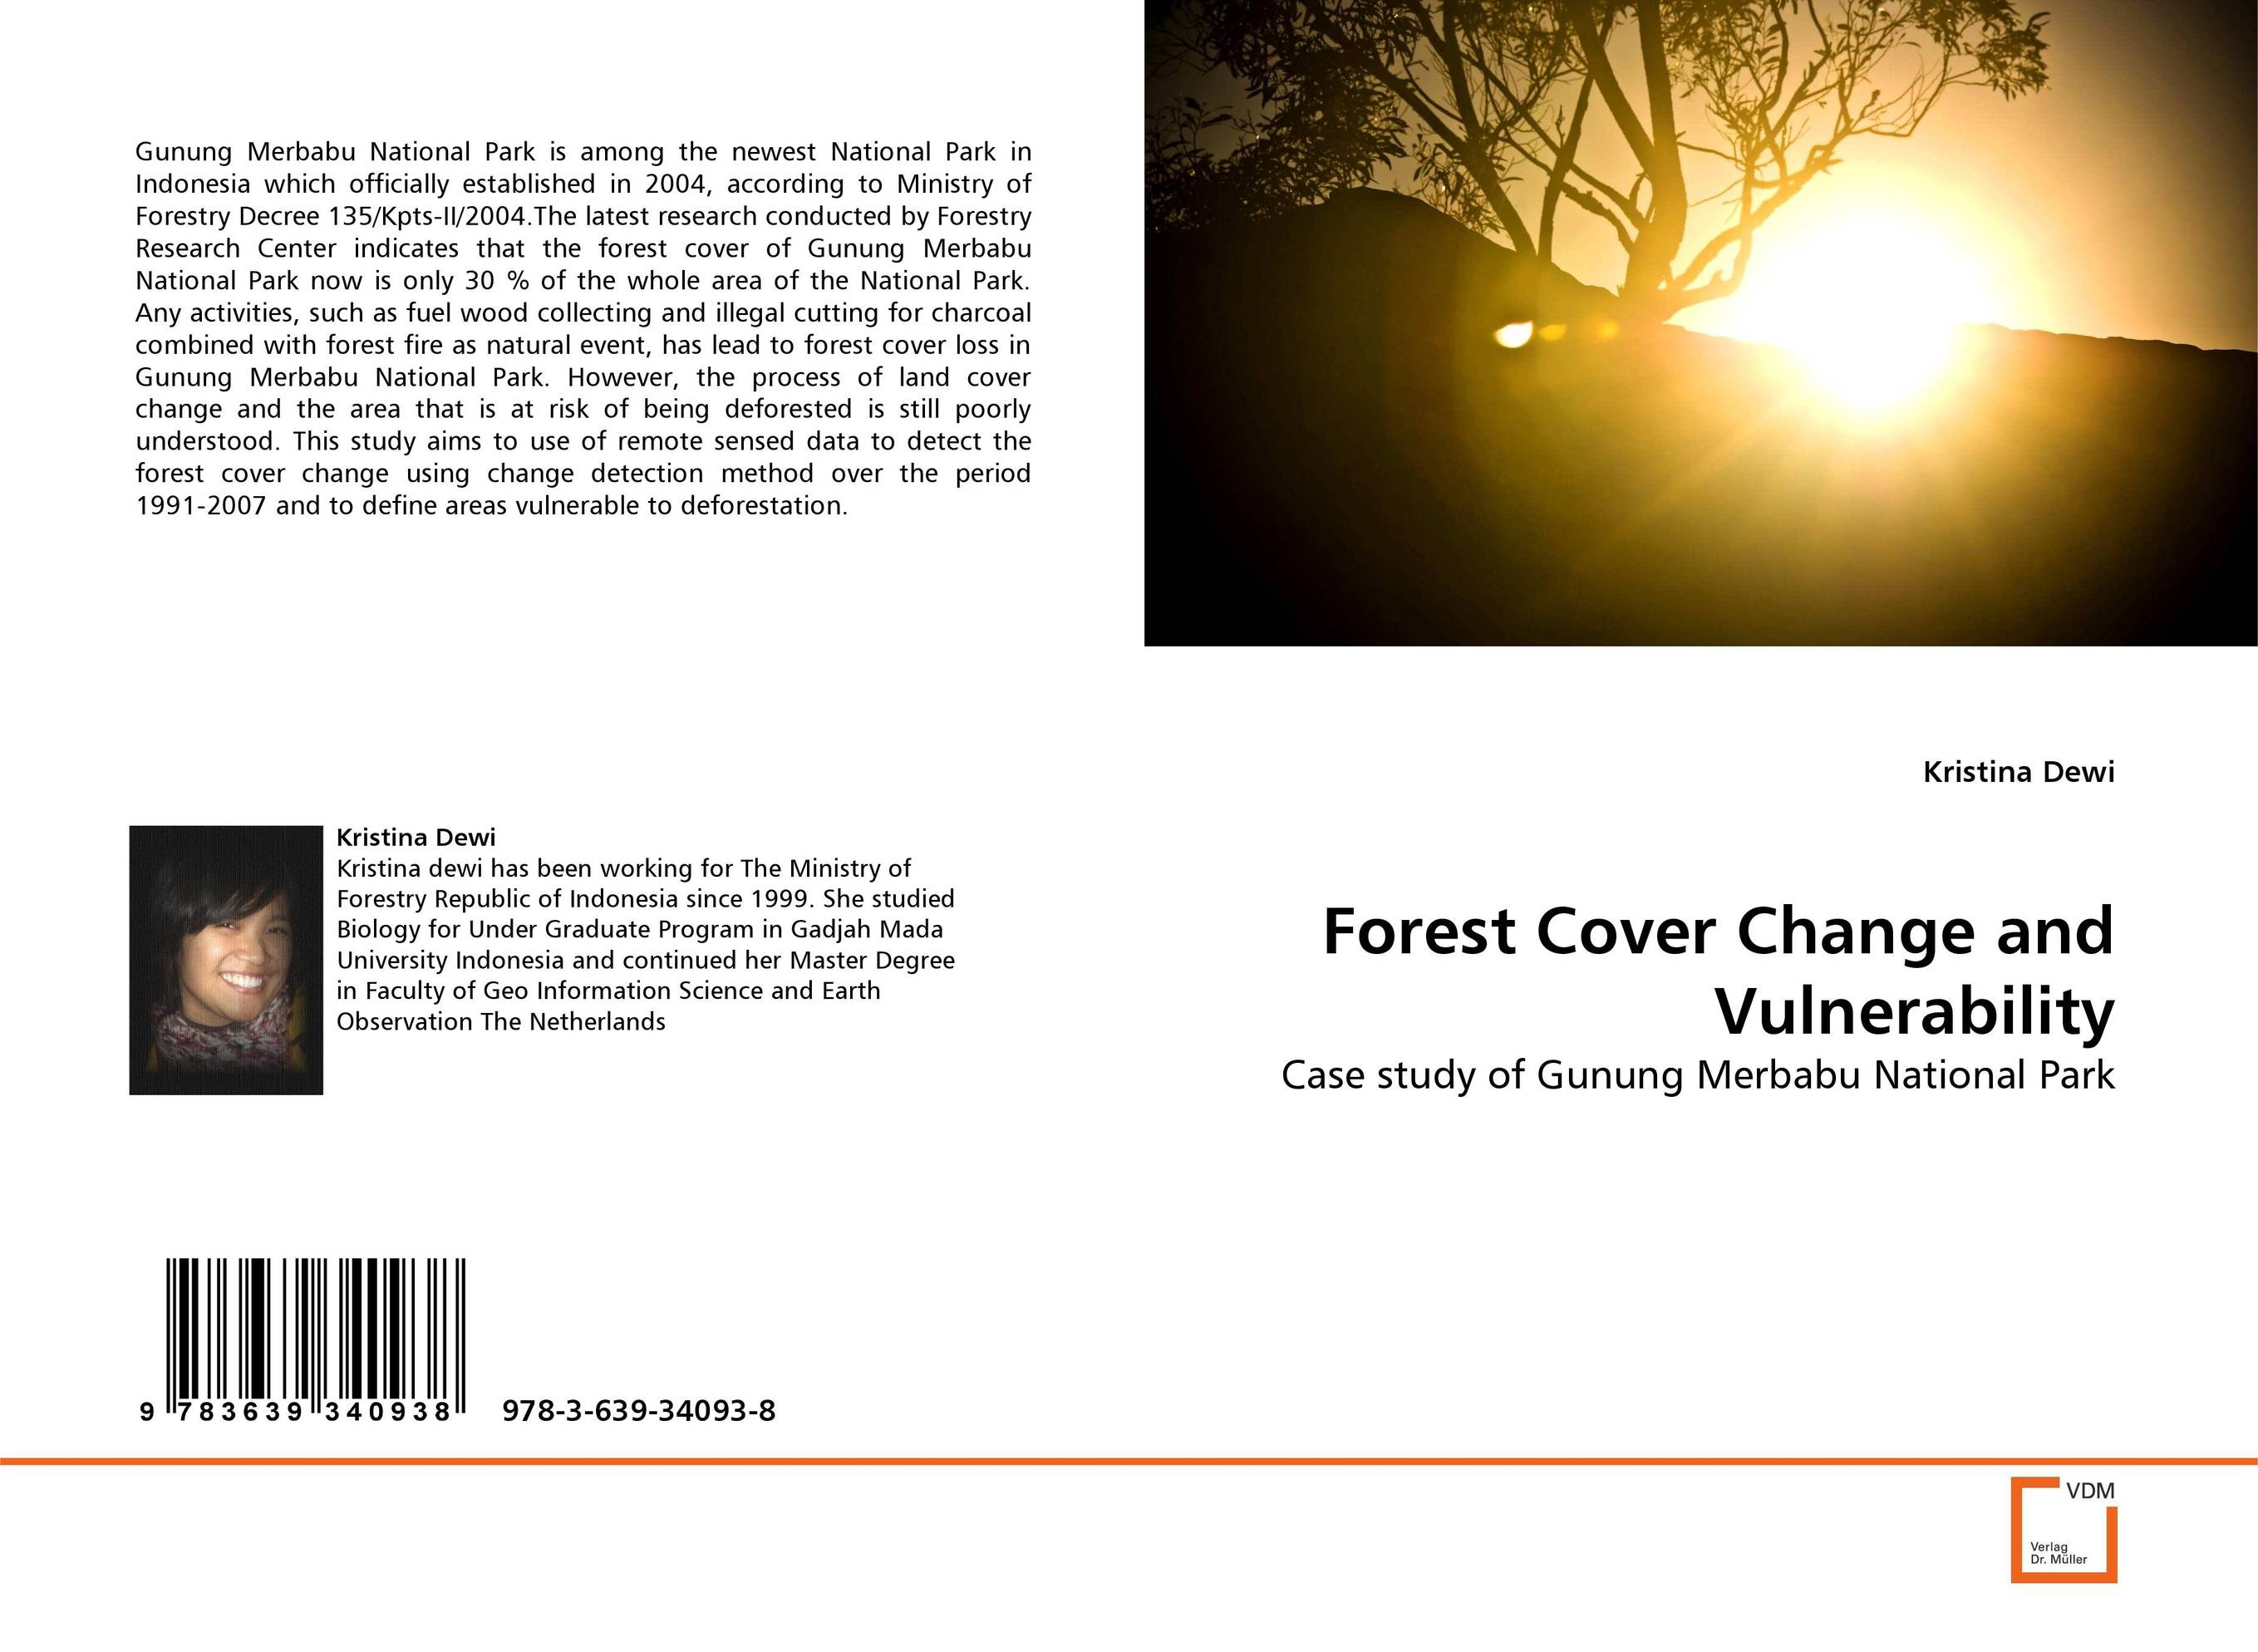 Forest Cover Change and Vulnerability national park architecture source